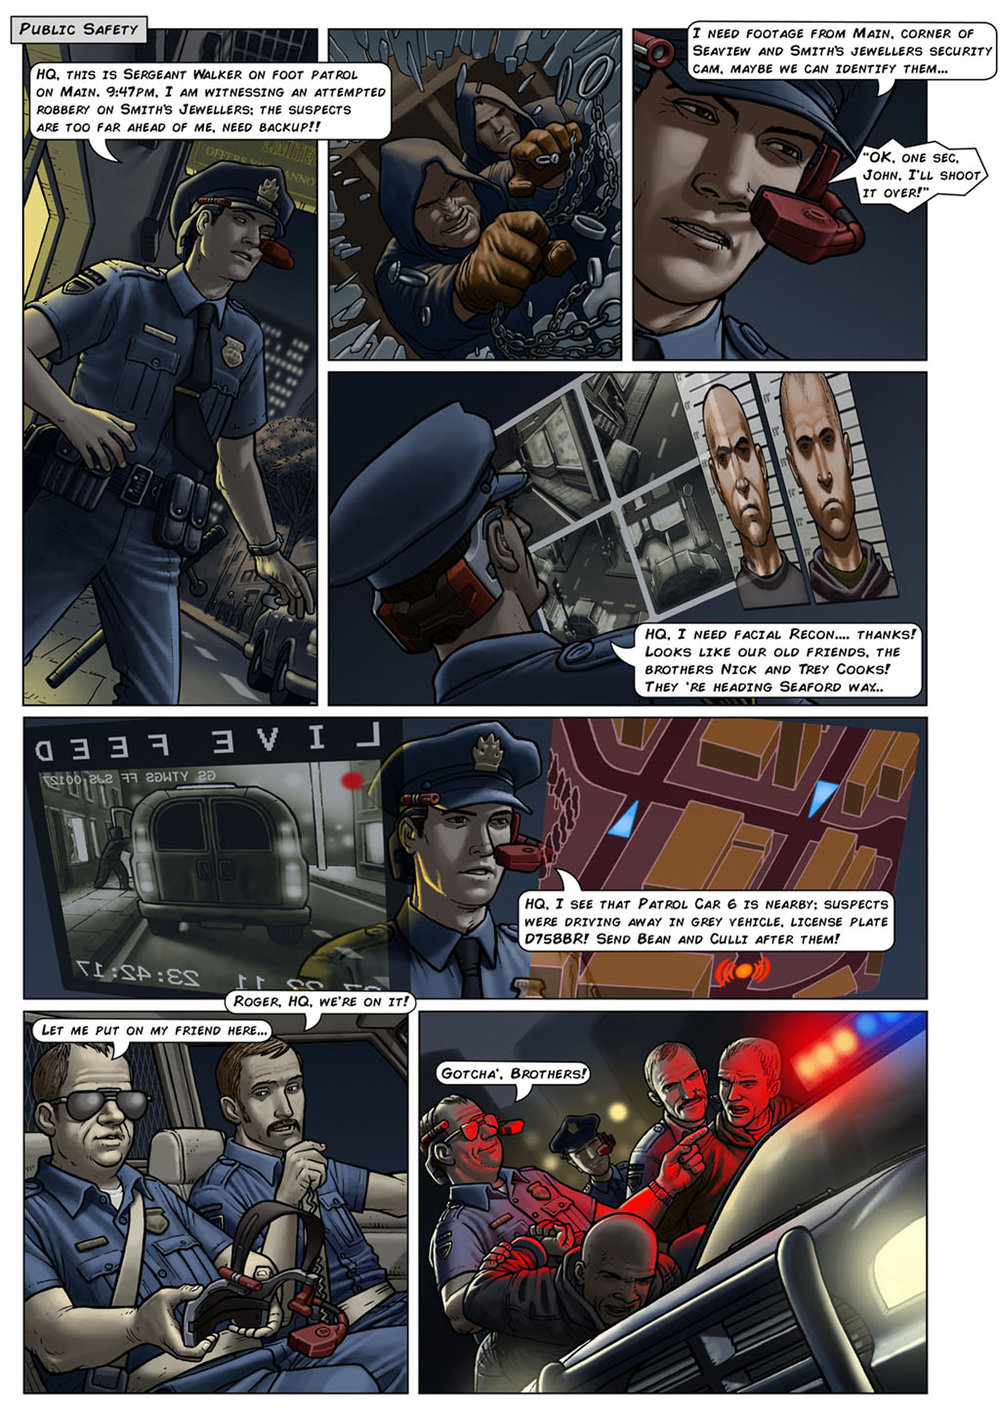 Colourised comic strip of an HMD being worn during a crime fighting scenario